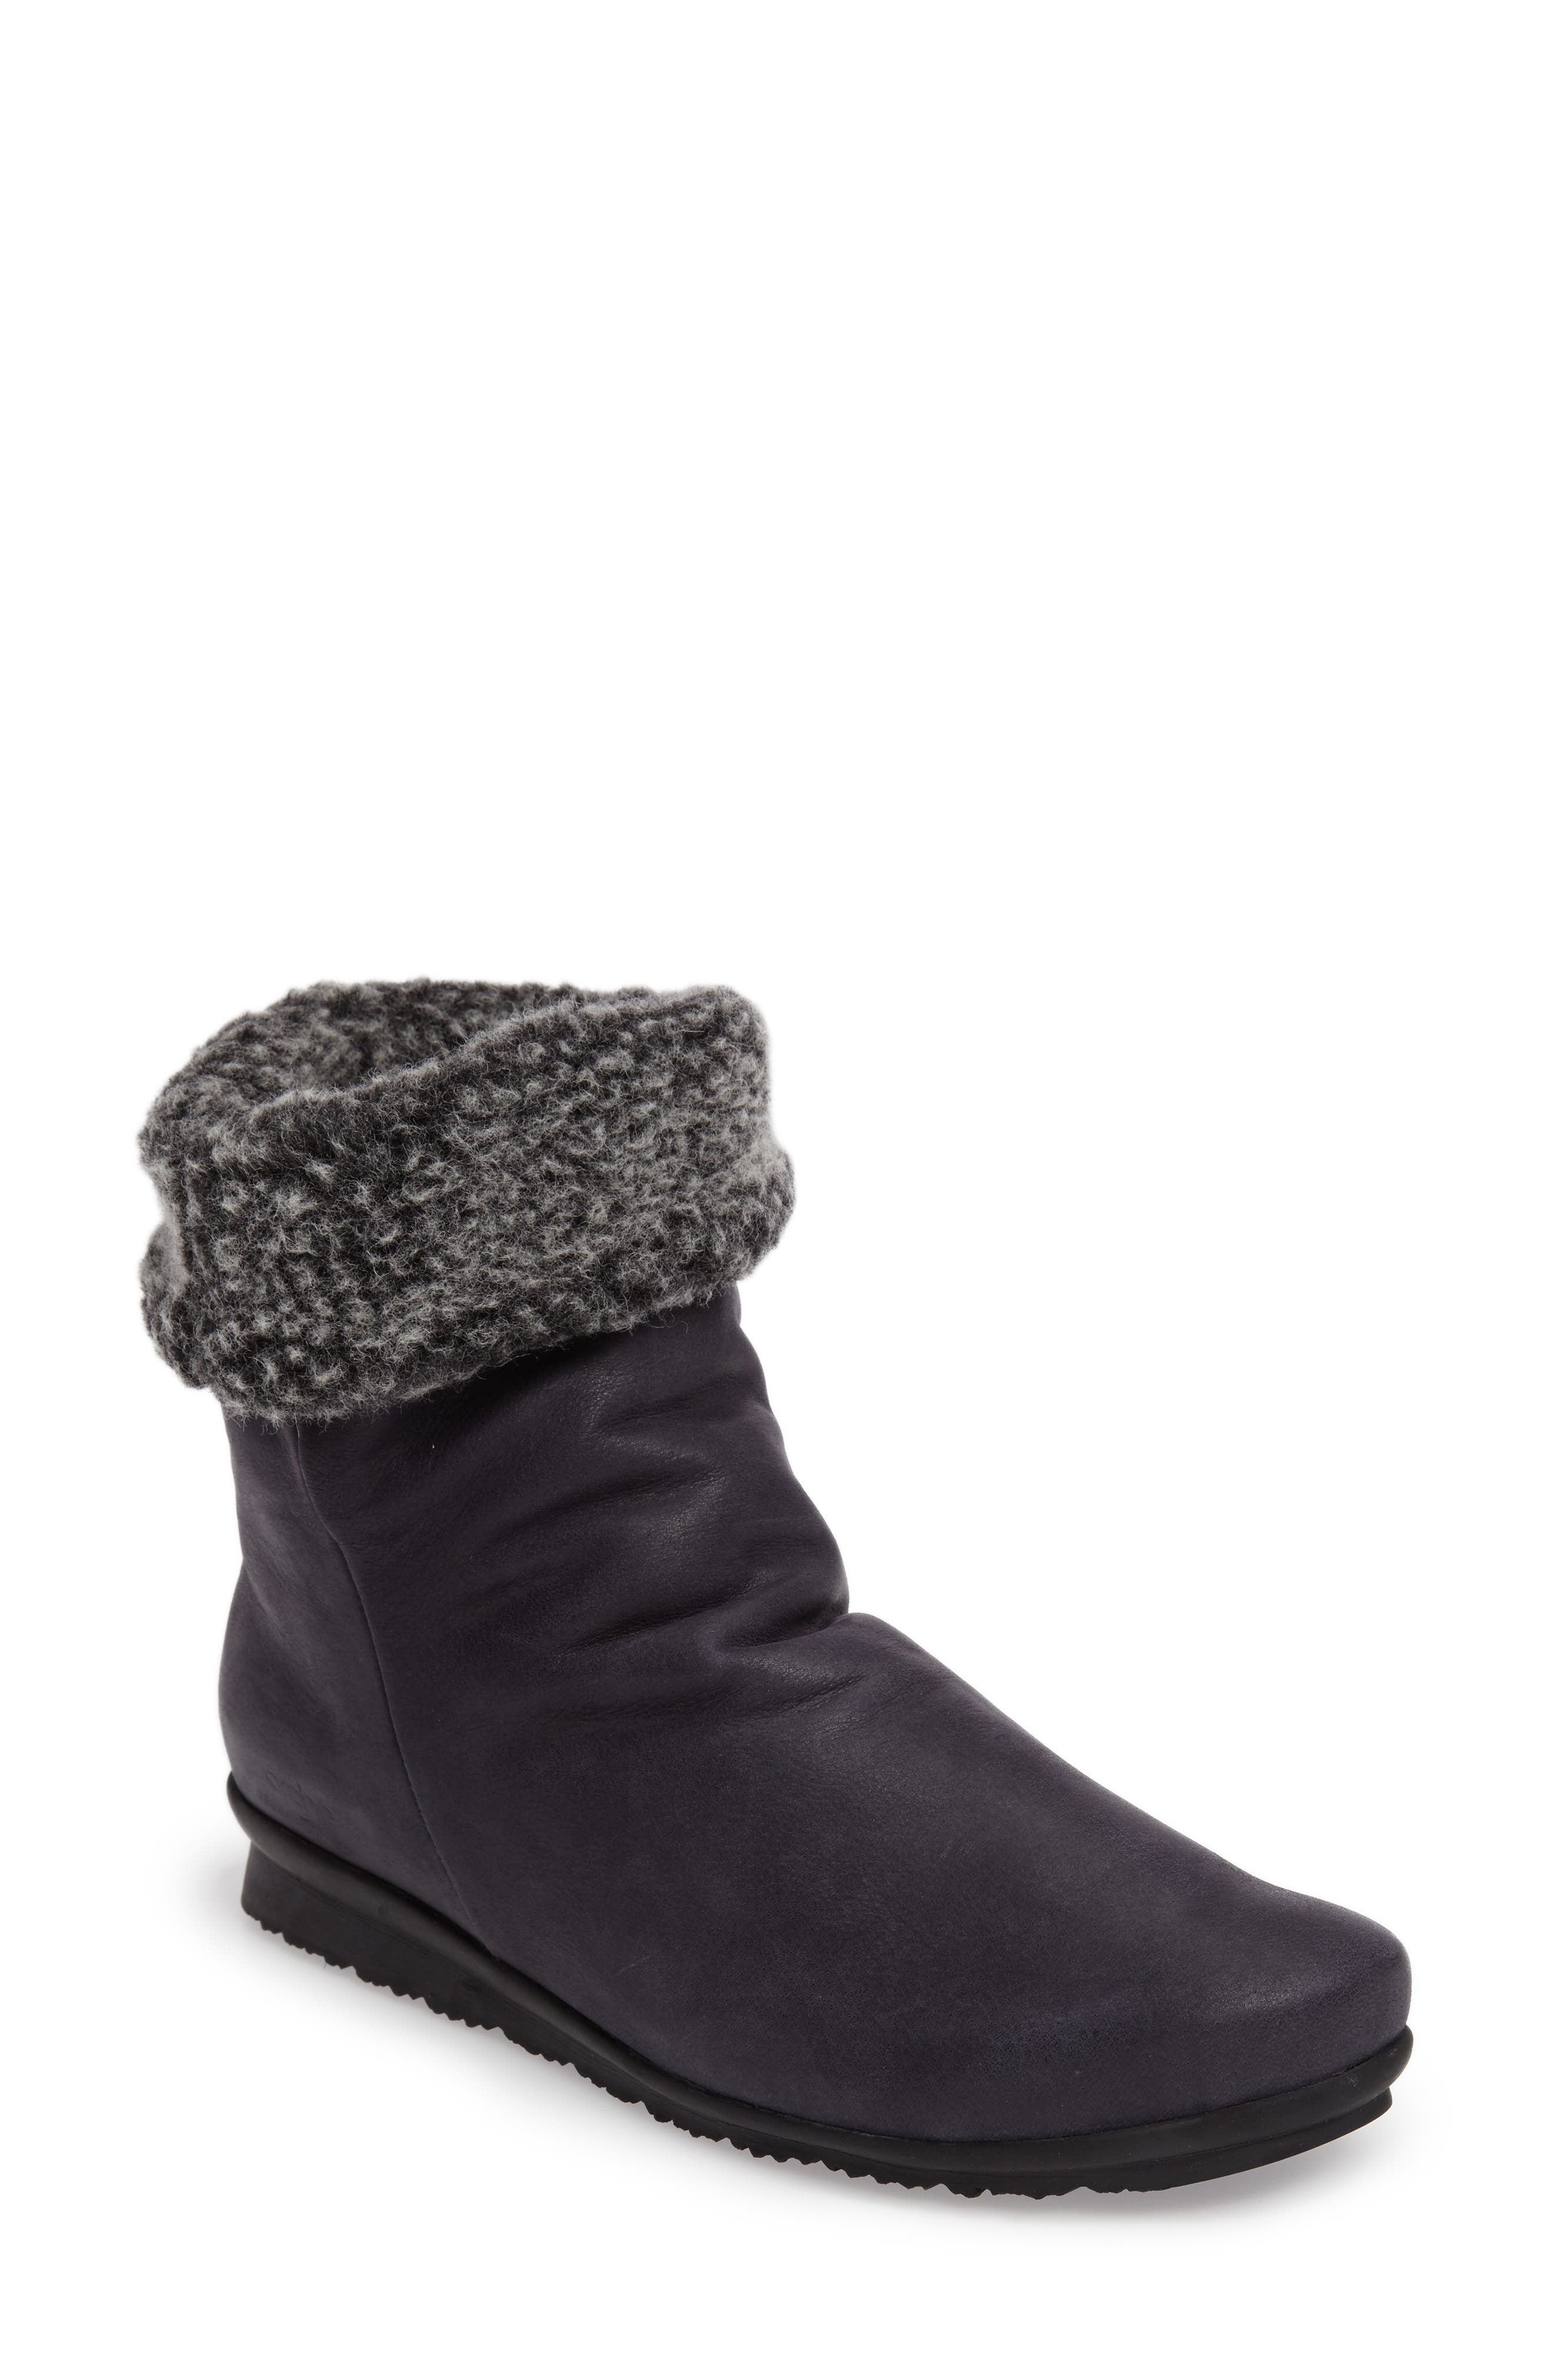 Barosa Faux Shearling Cuffed Bootie,                         Main,                         color, 071